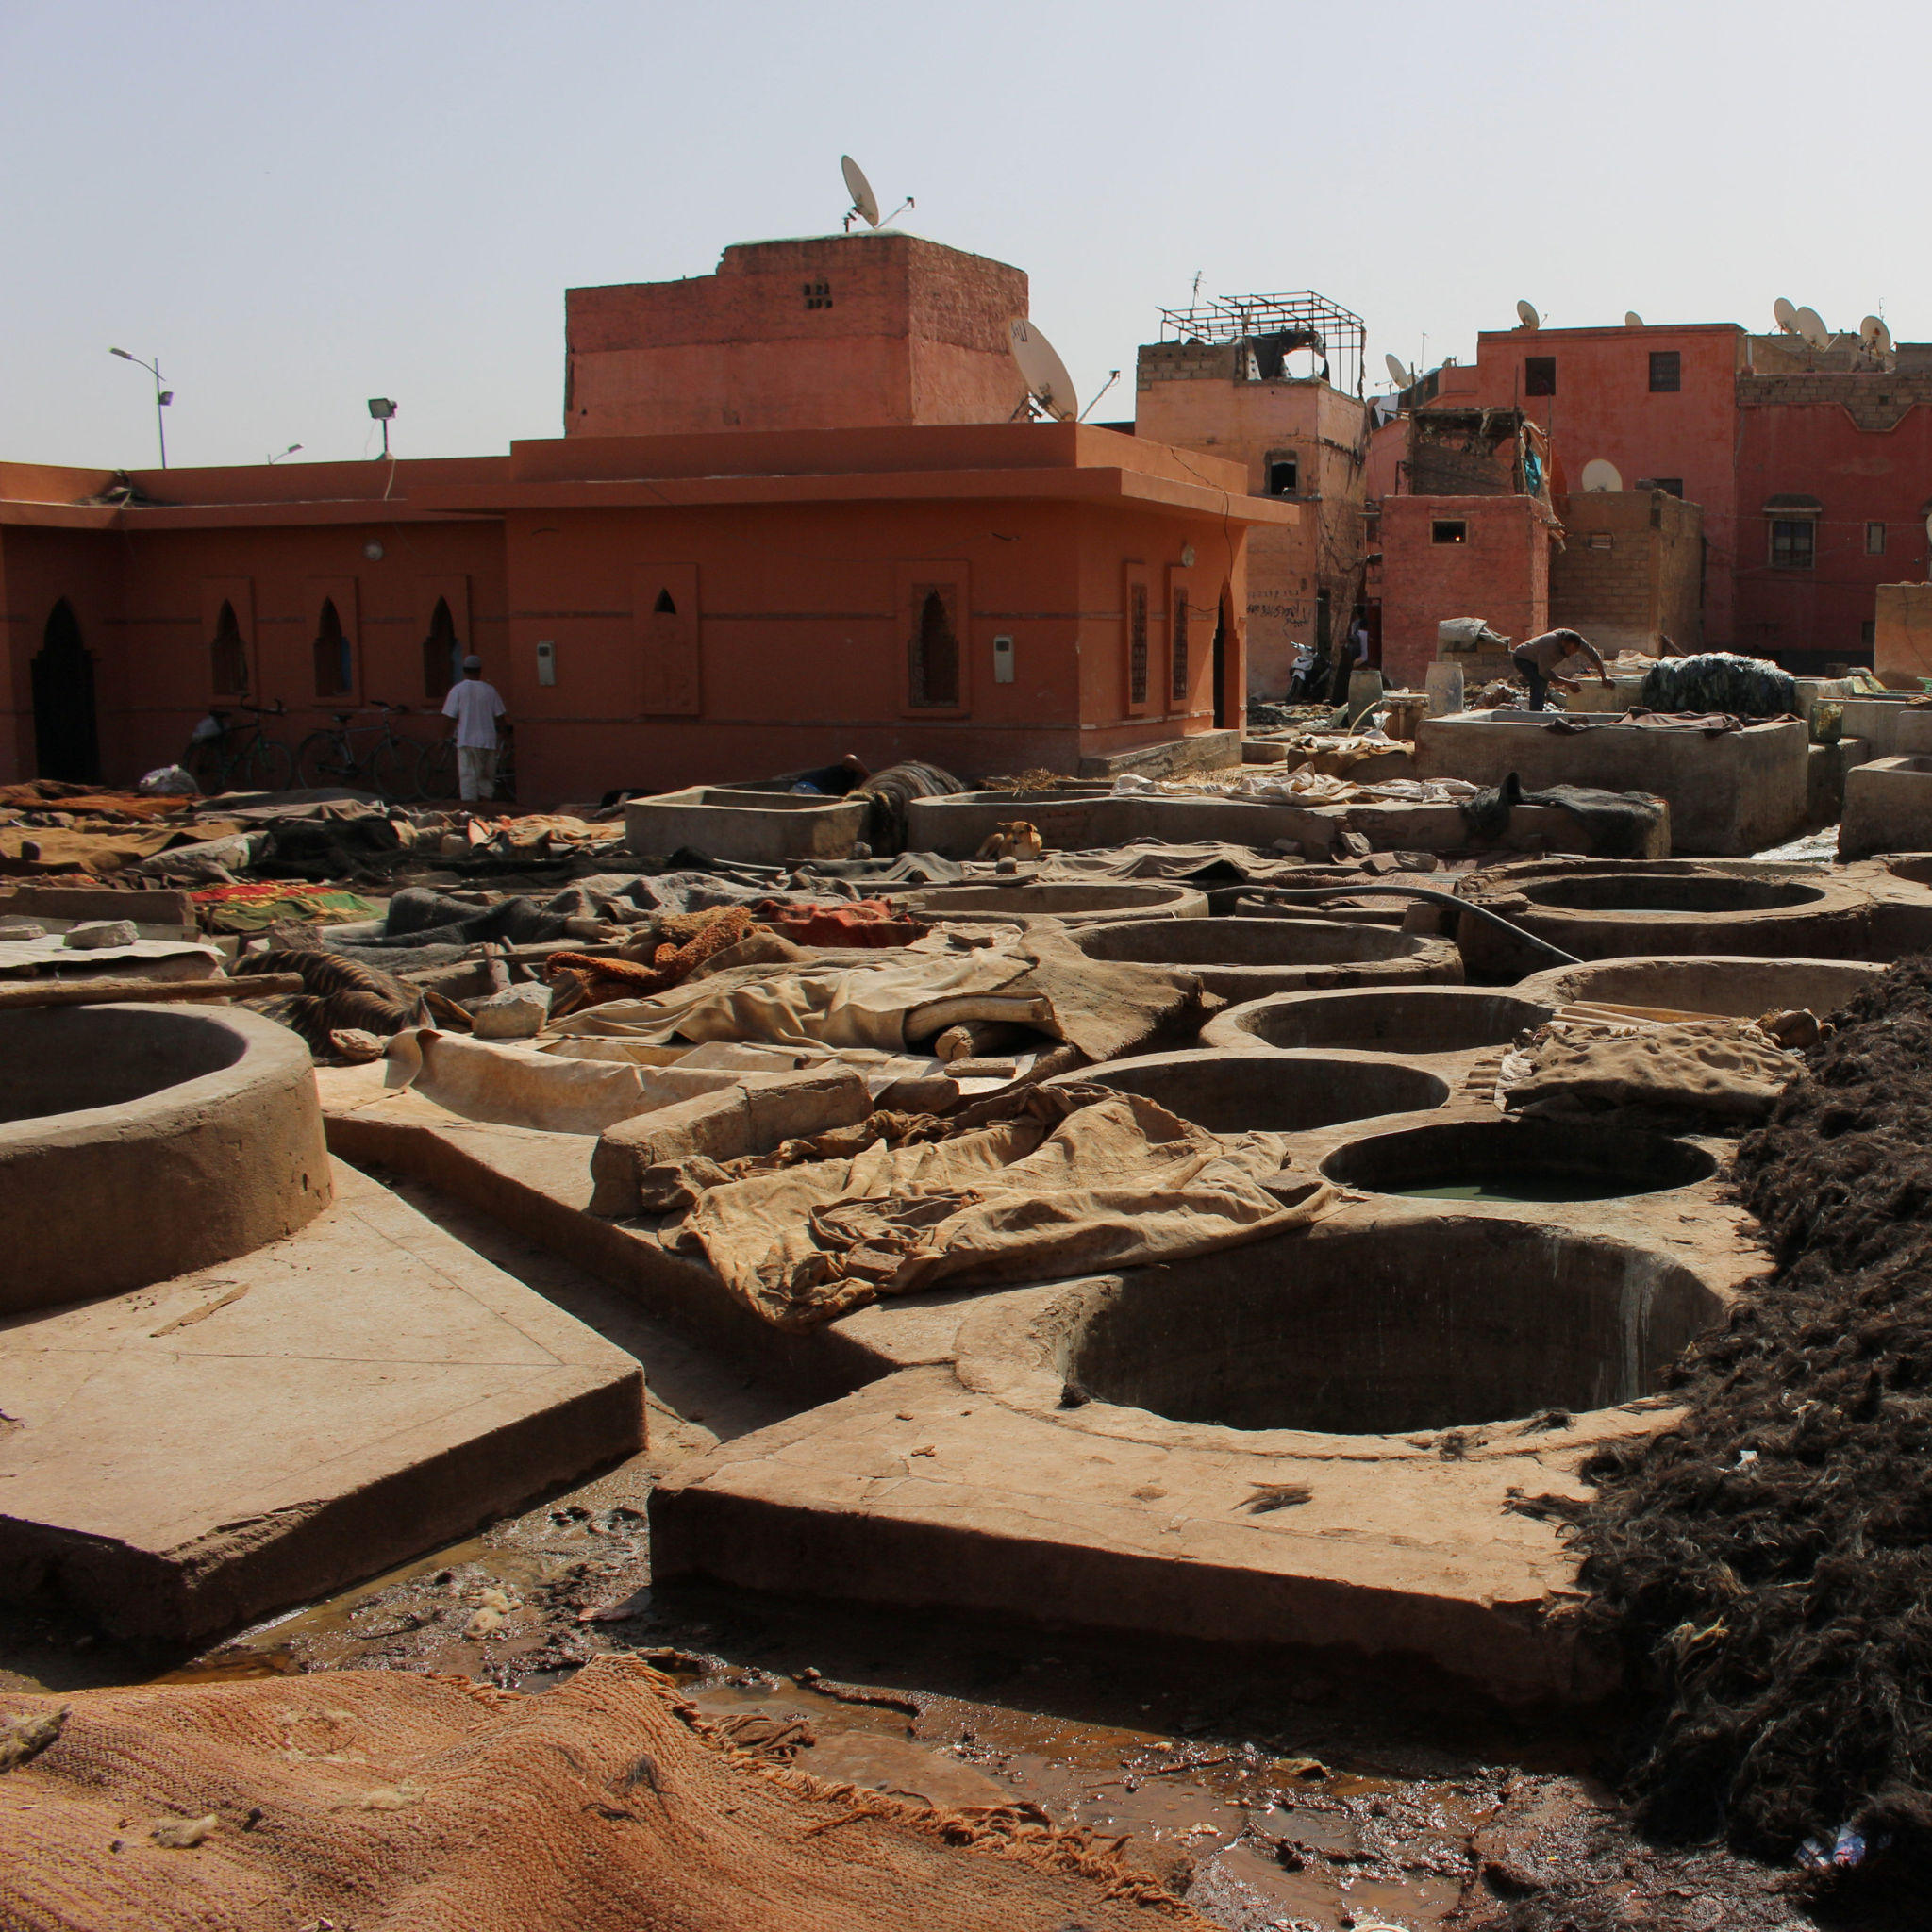 The ancient tannery in Marrakech creating vegetable tanned leather